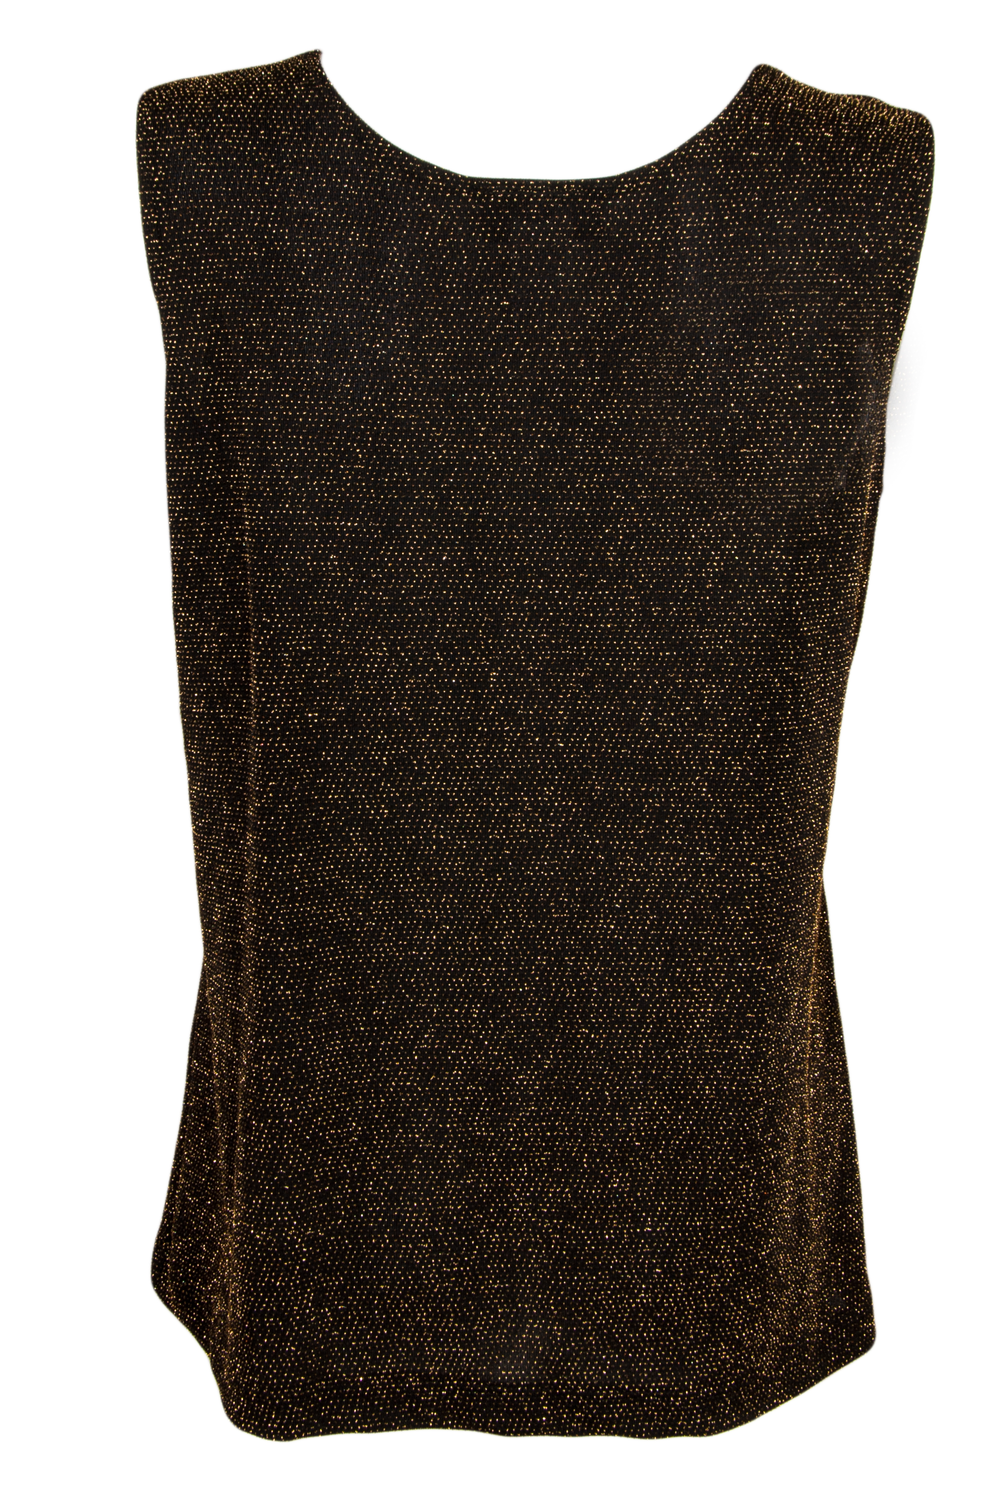 black and gold metallic tank top